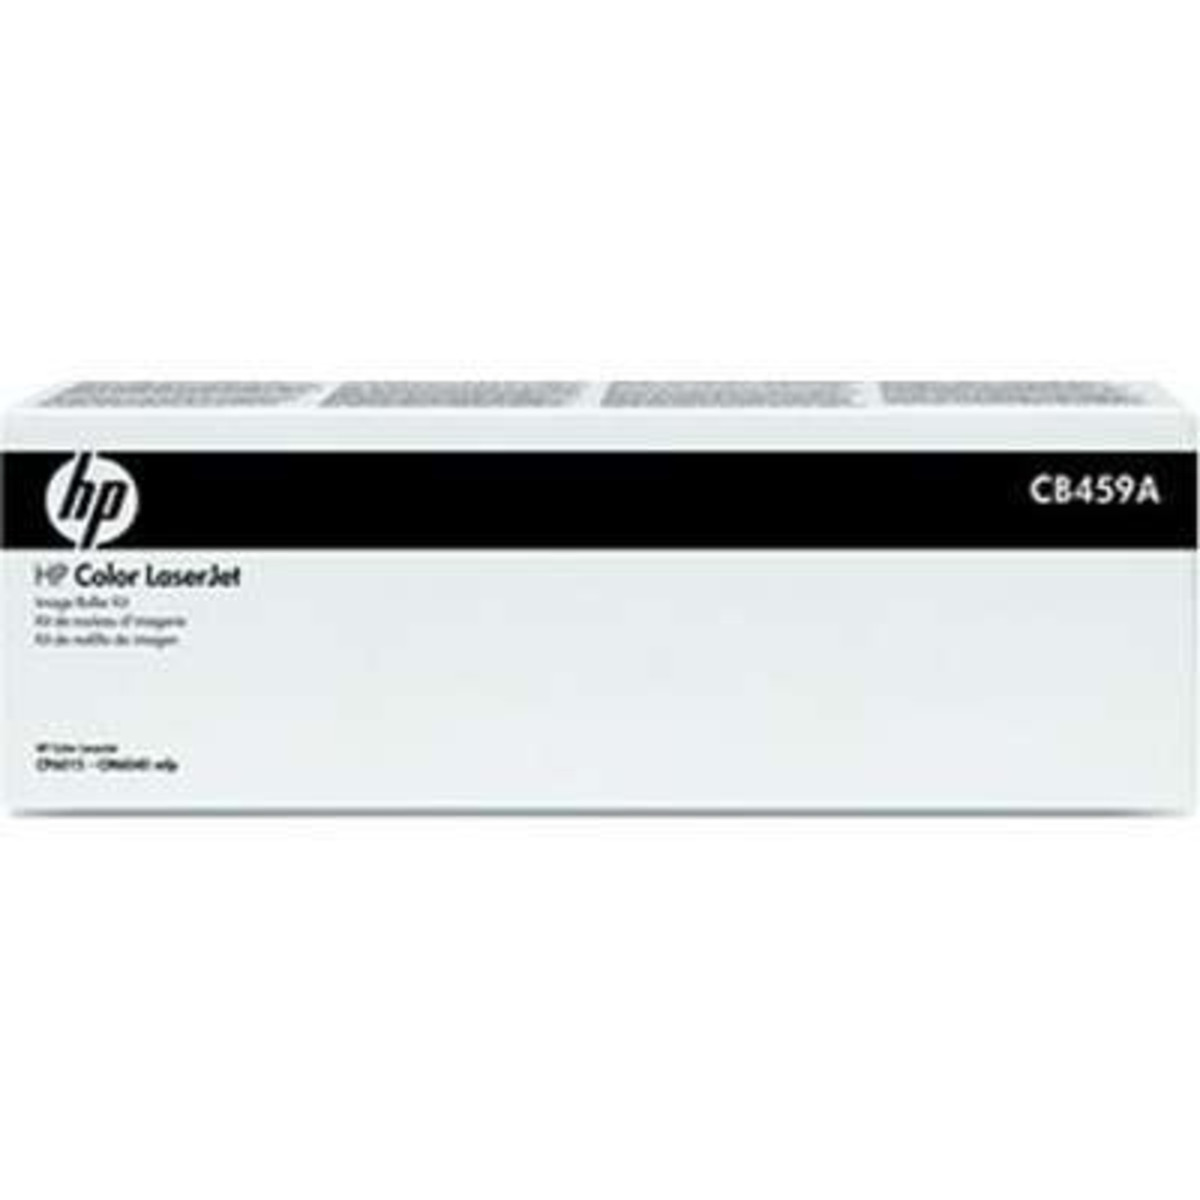 HP Colour LaserJet Roller Kit (CB459A)